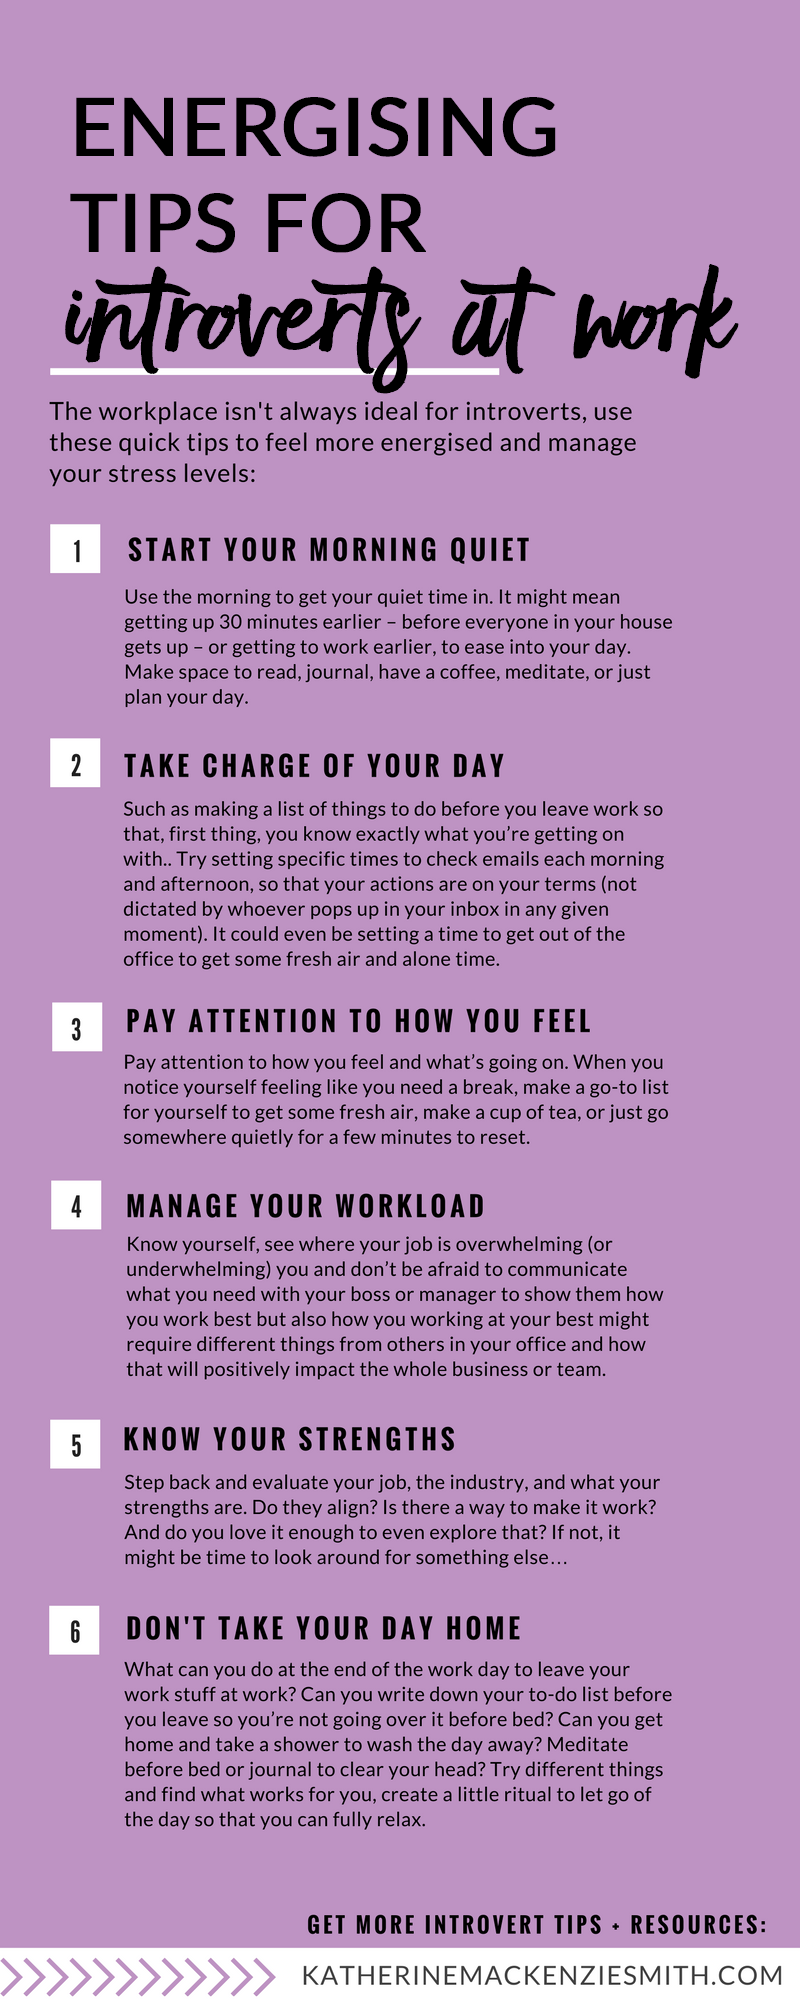 Work Stress Quotes 6 Ways Your Job is Draining You (+ energising tips to help)